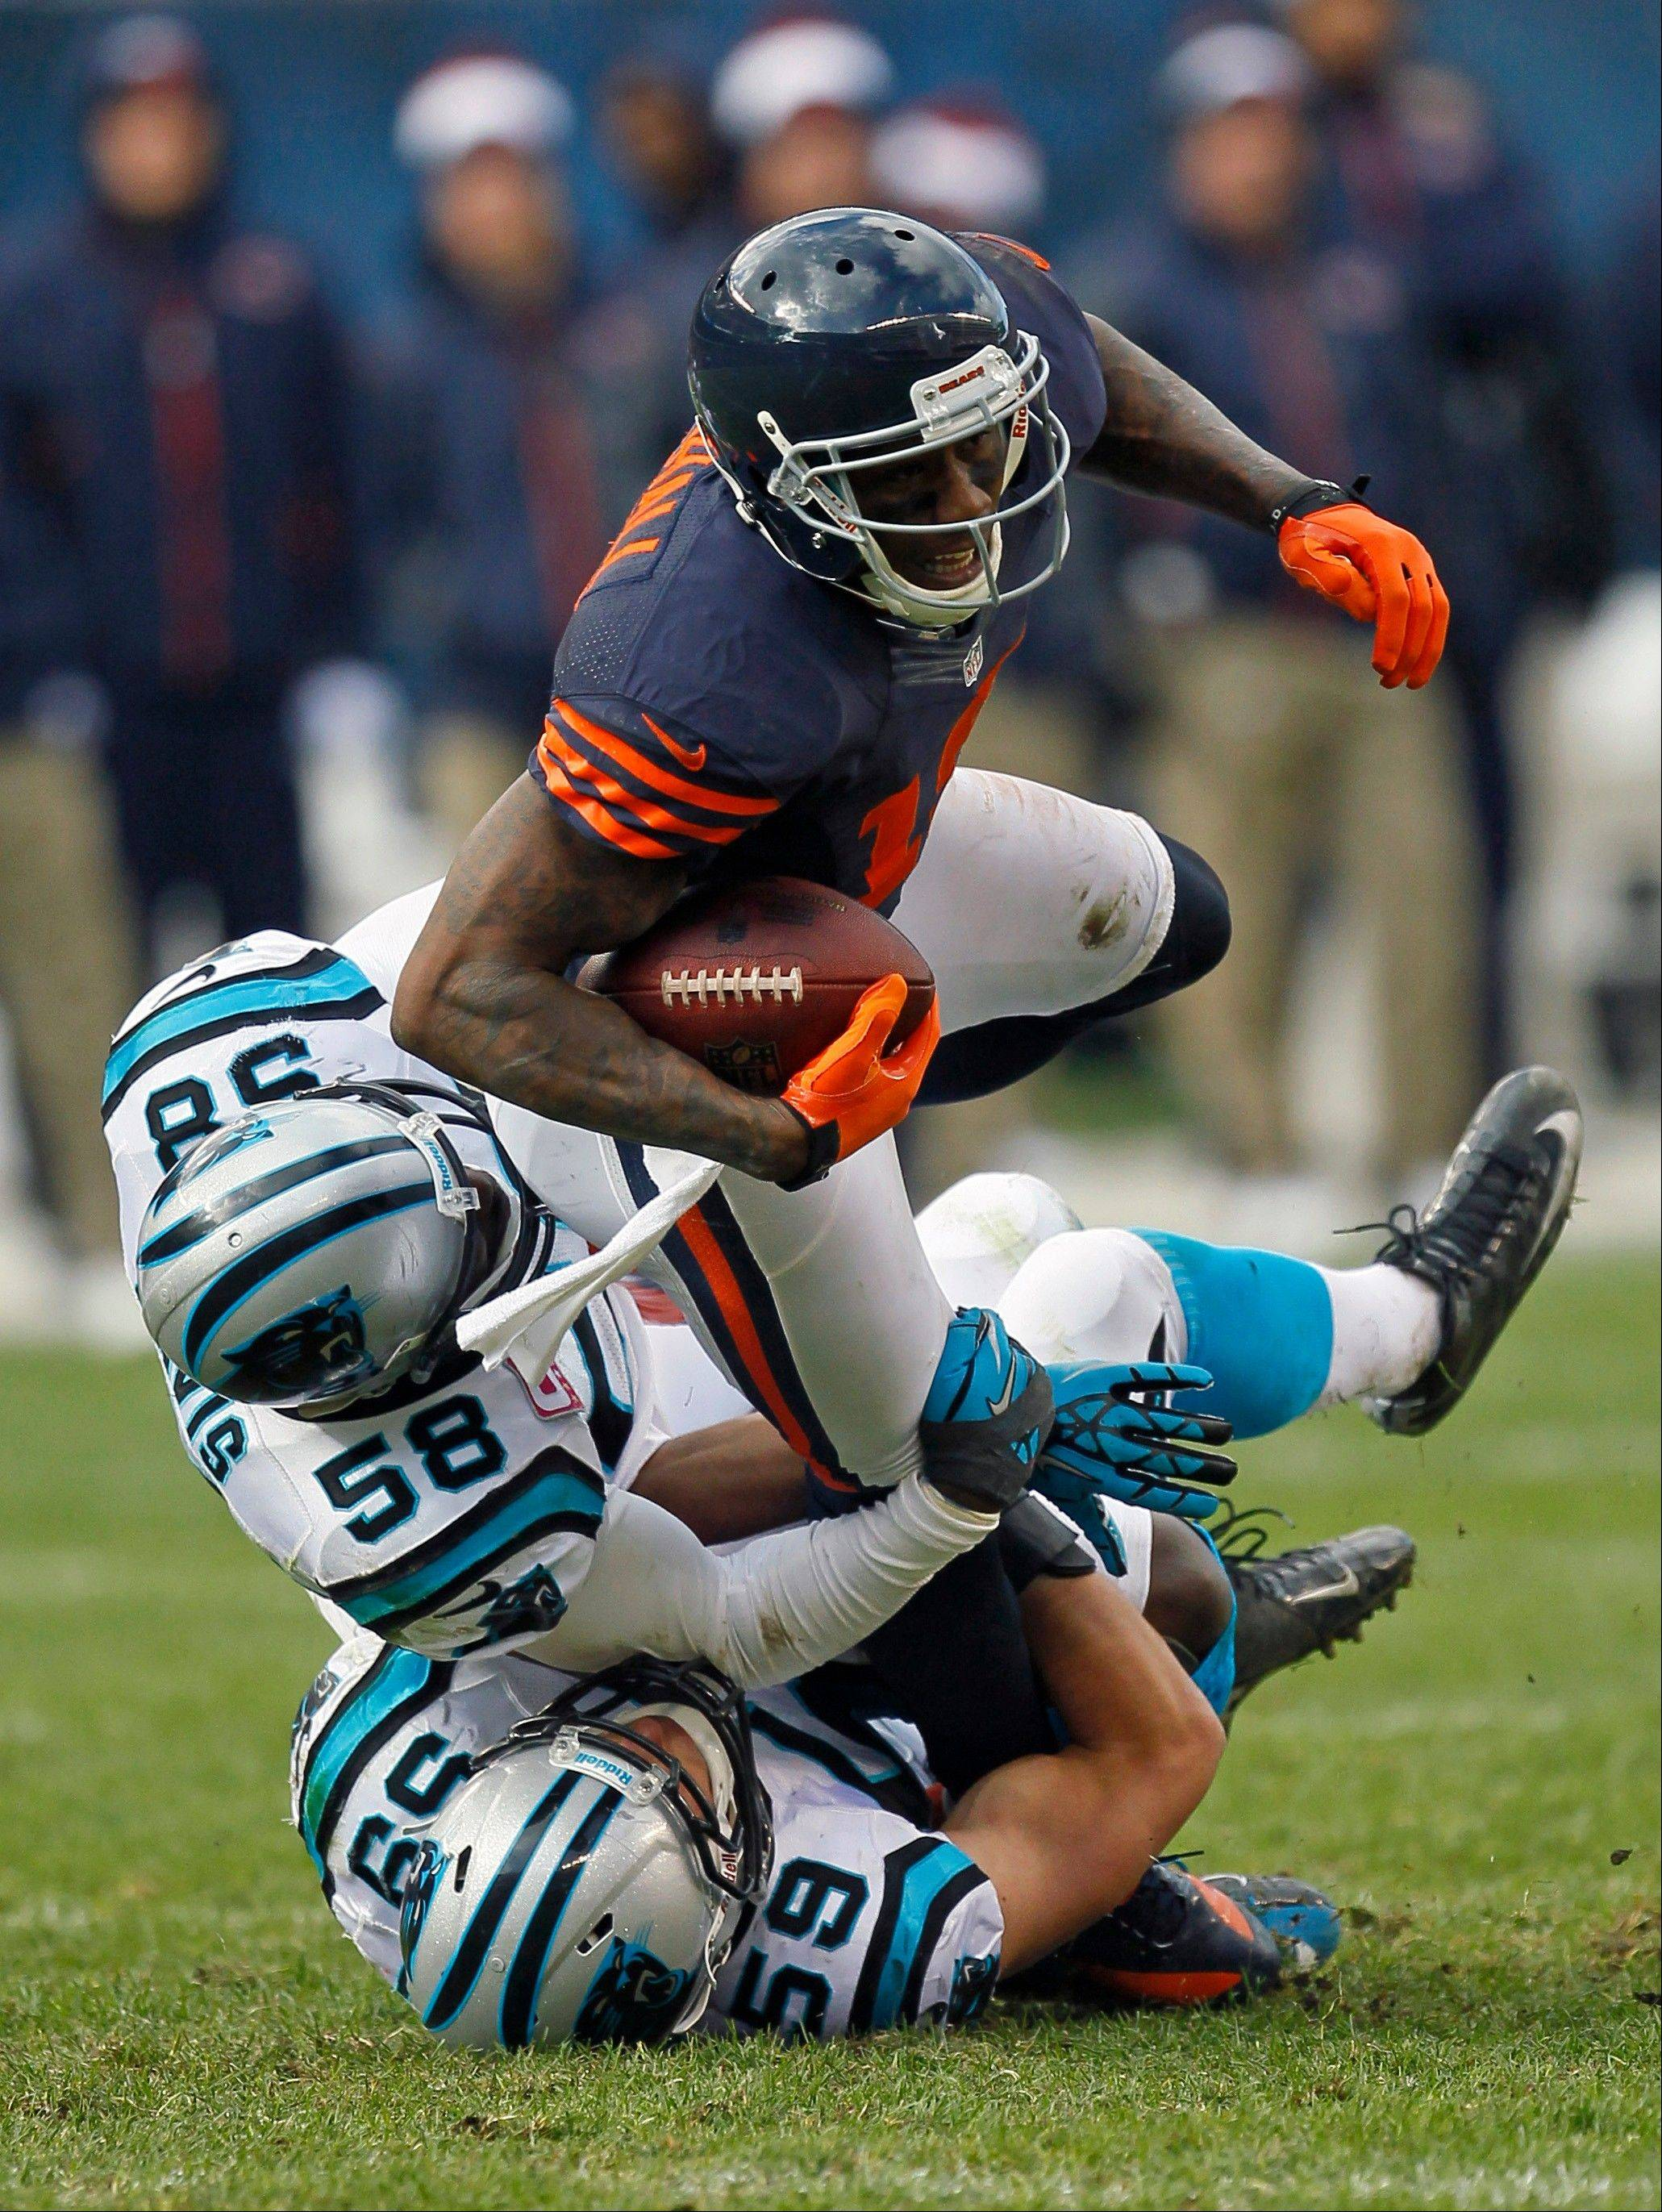 Brandon Marshall is tackled by Panthers linebackers Thomas Davis (58) and Luke Kuechly (59) after a reception during the Bears' victory last week at Soldier Field. Marshall has more receptions (50) and receiving yards (675) than all the other team's receivers combined.